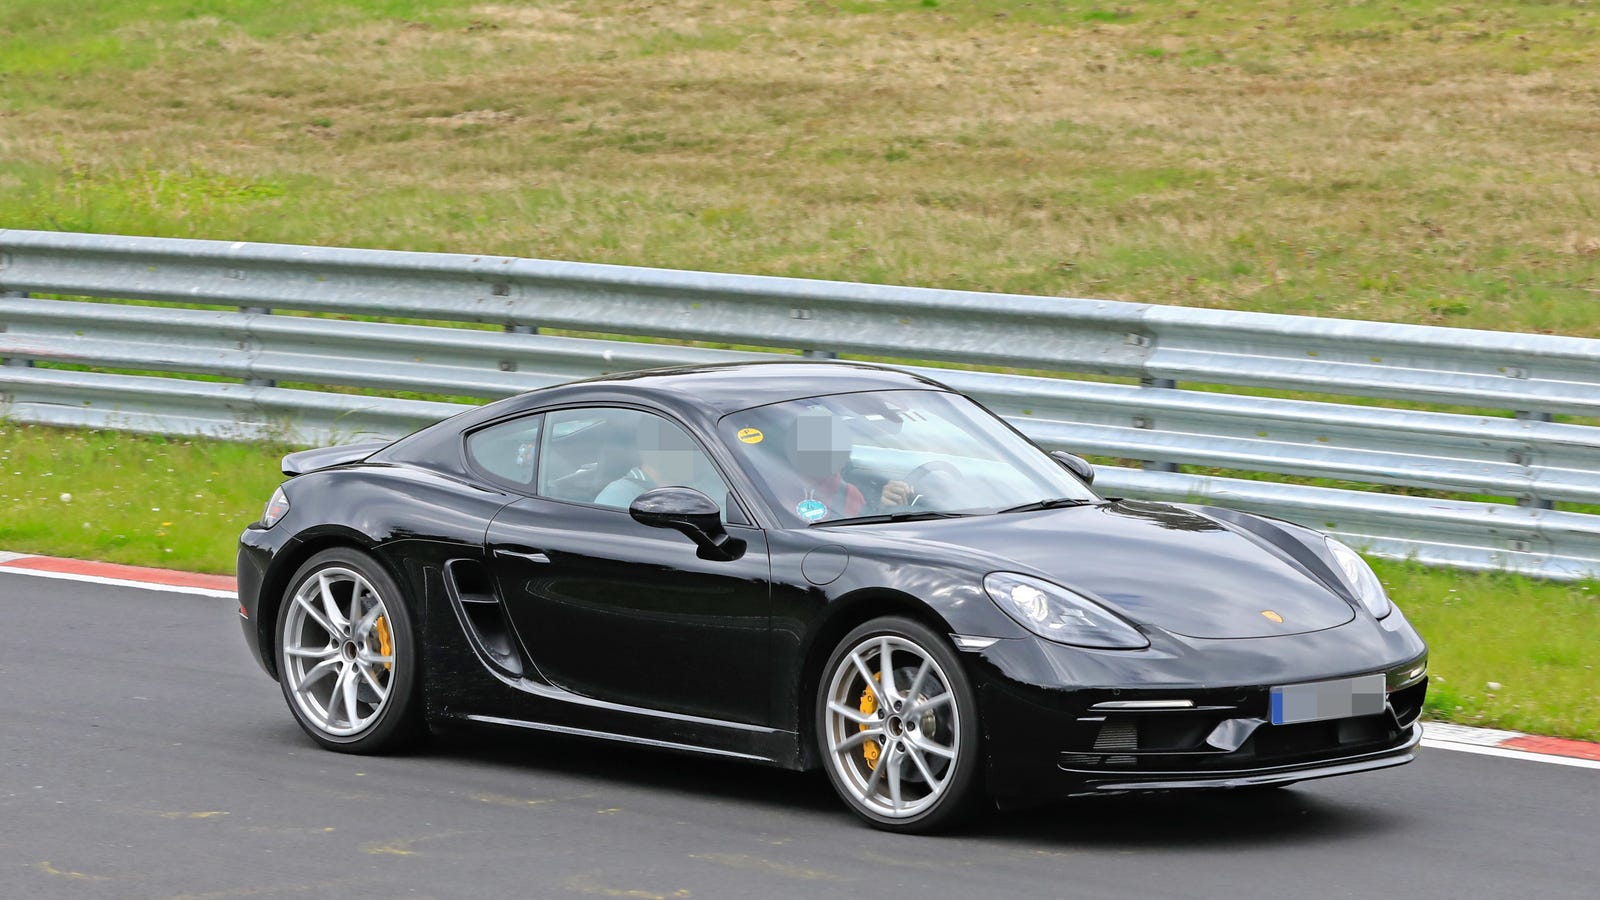 Six Cylinder Porsche 718 Boxster and Cayman Touring Models Spied Testing – Jalopnik